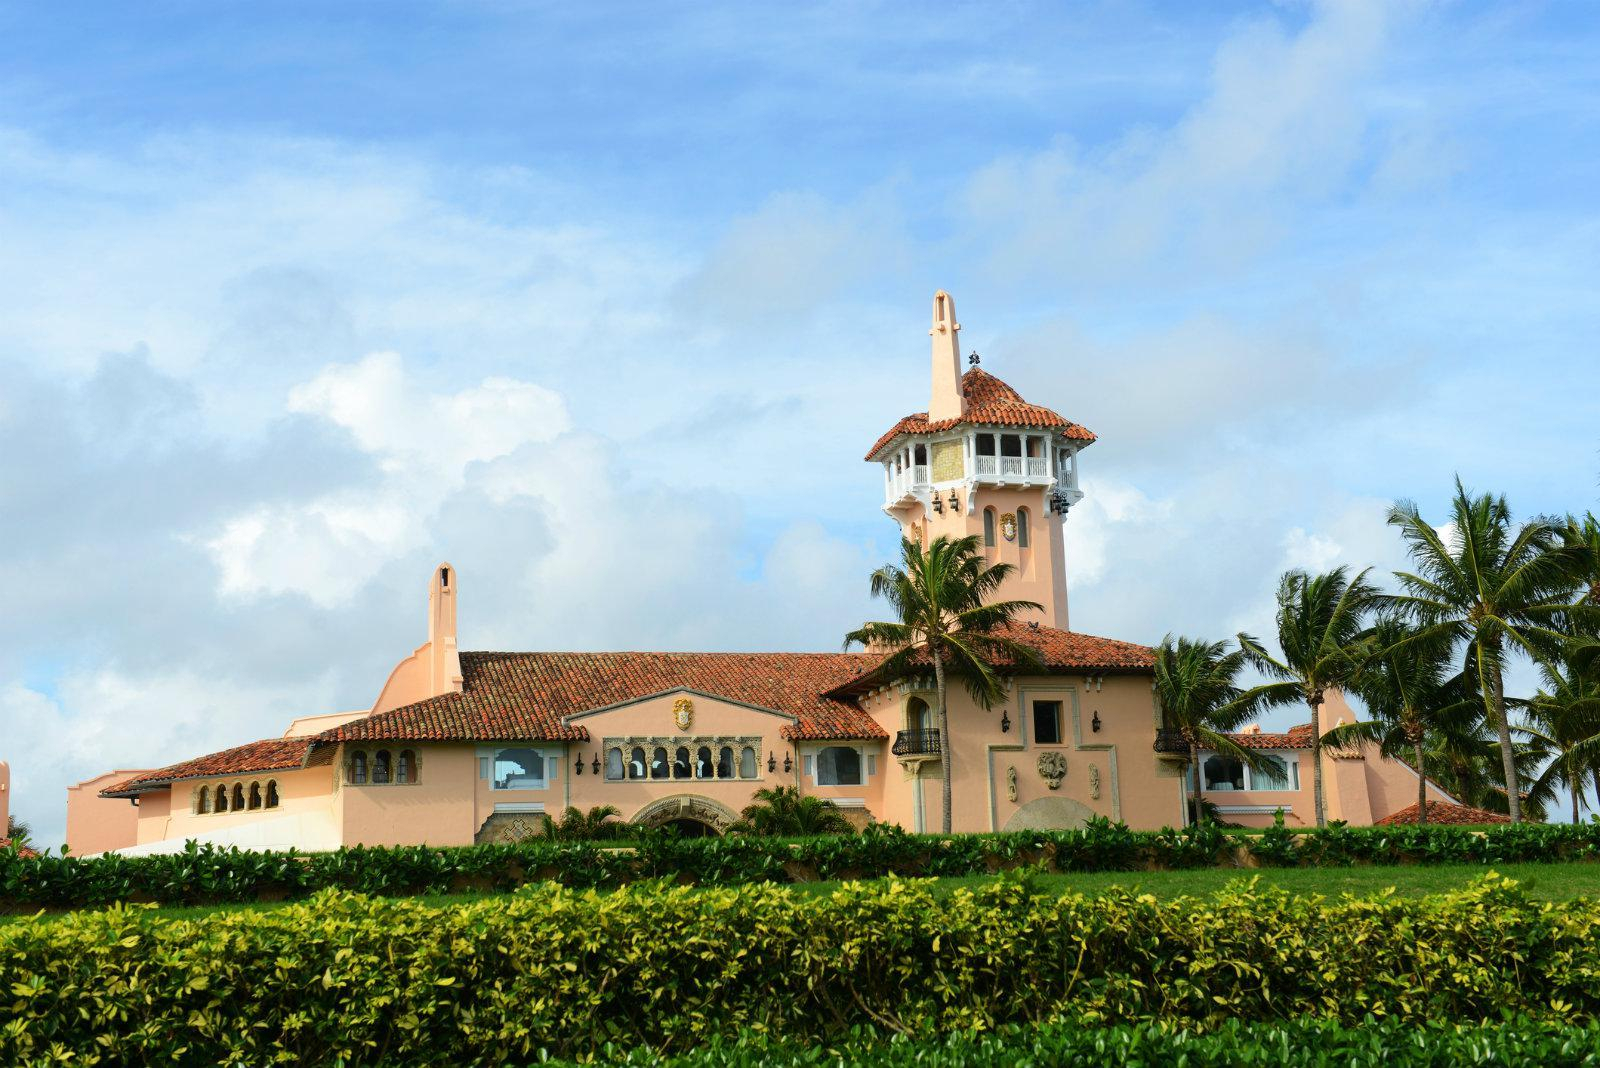 Trump'S Maralago Club Kitchen Cited For Hot Dogs On The